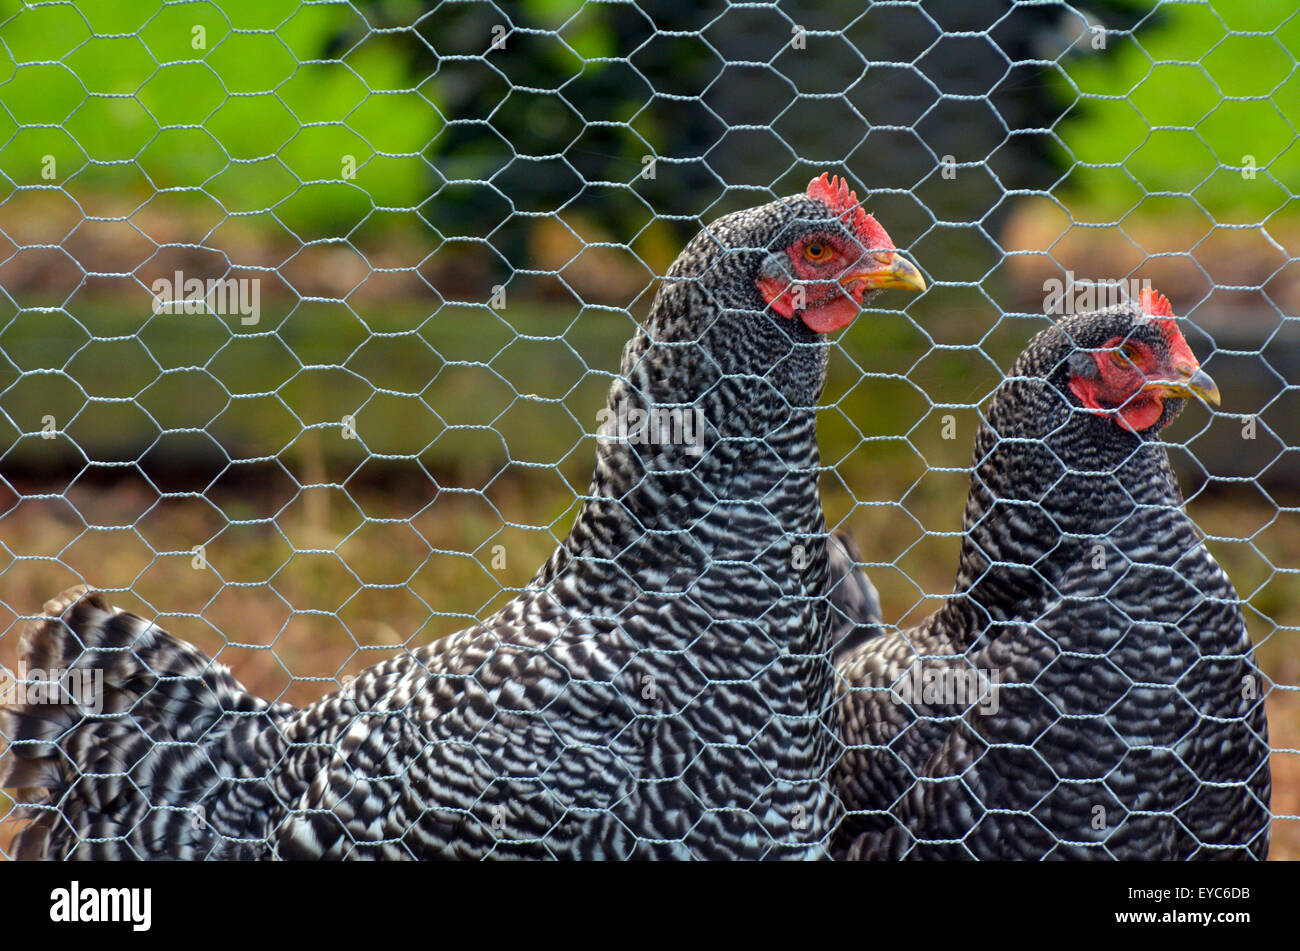 black rock chicken stockfotos black rock chicken bilder alamy. Black Bedroom Furniture Sets. Home Design Ideas